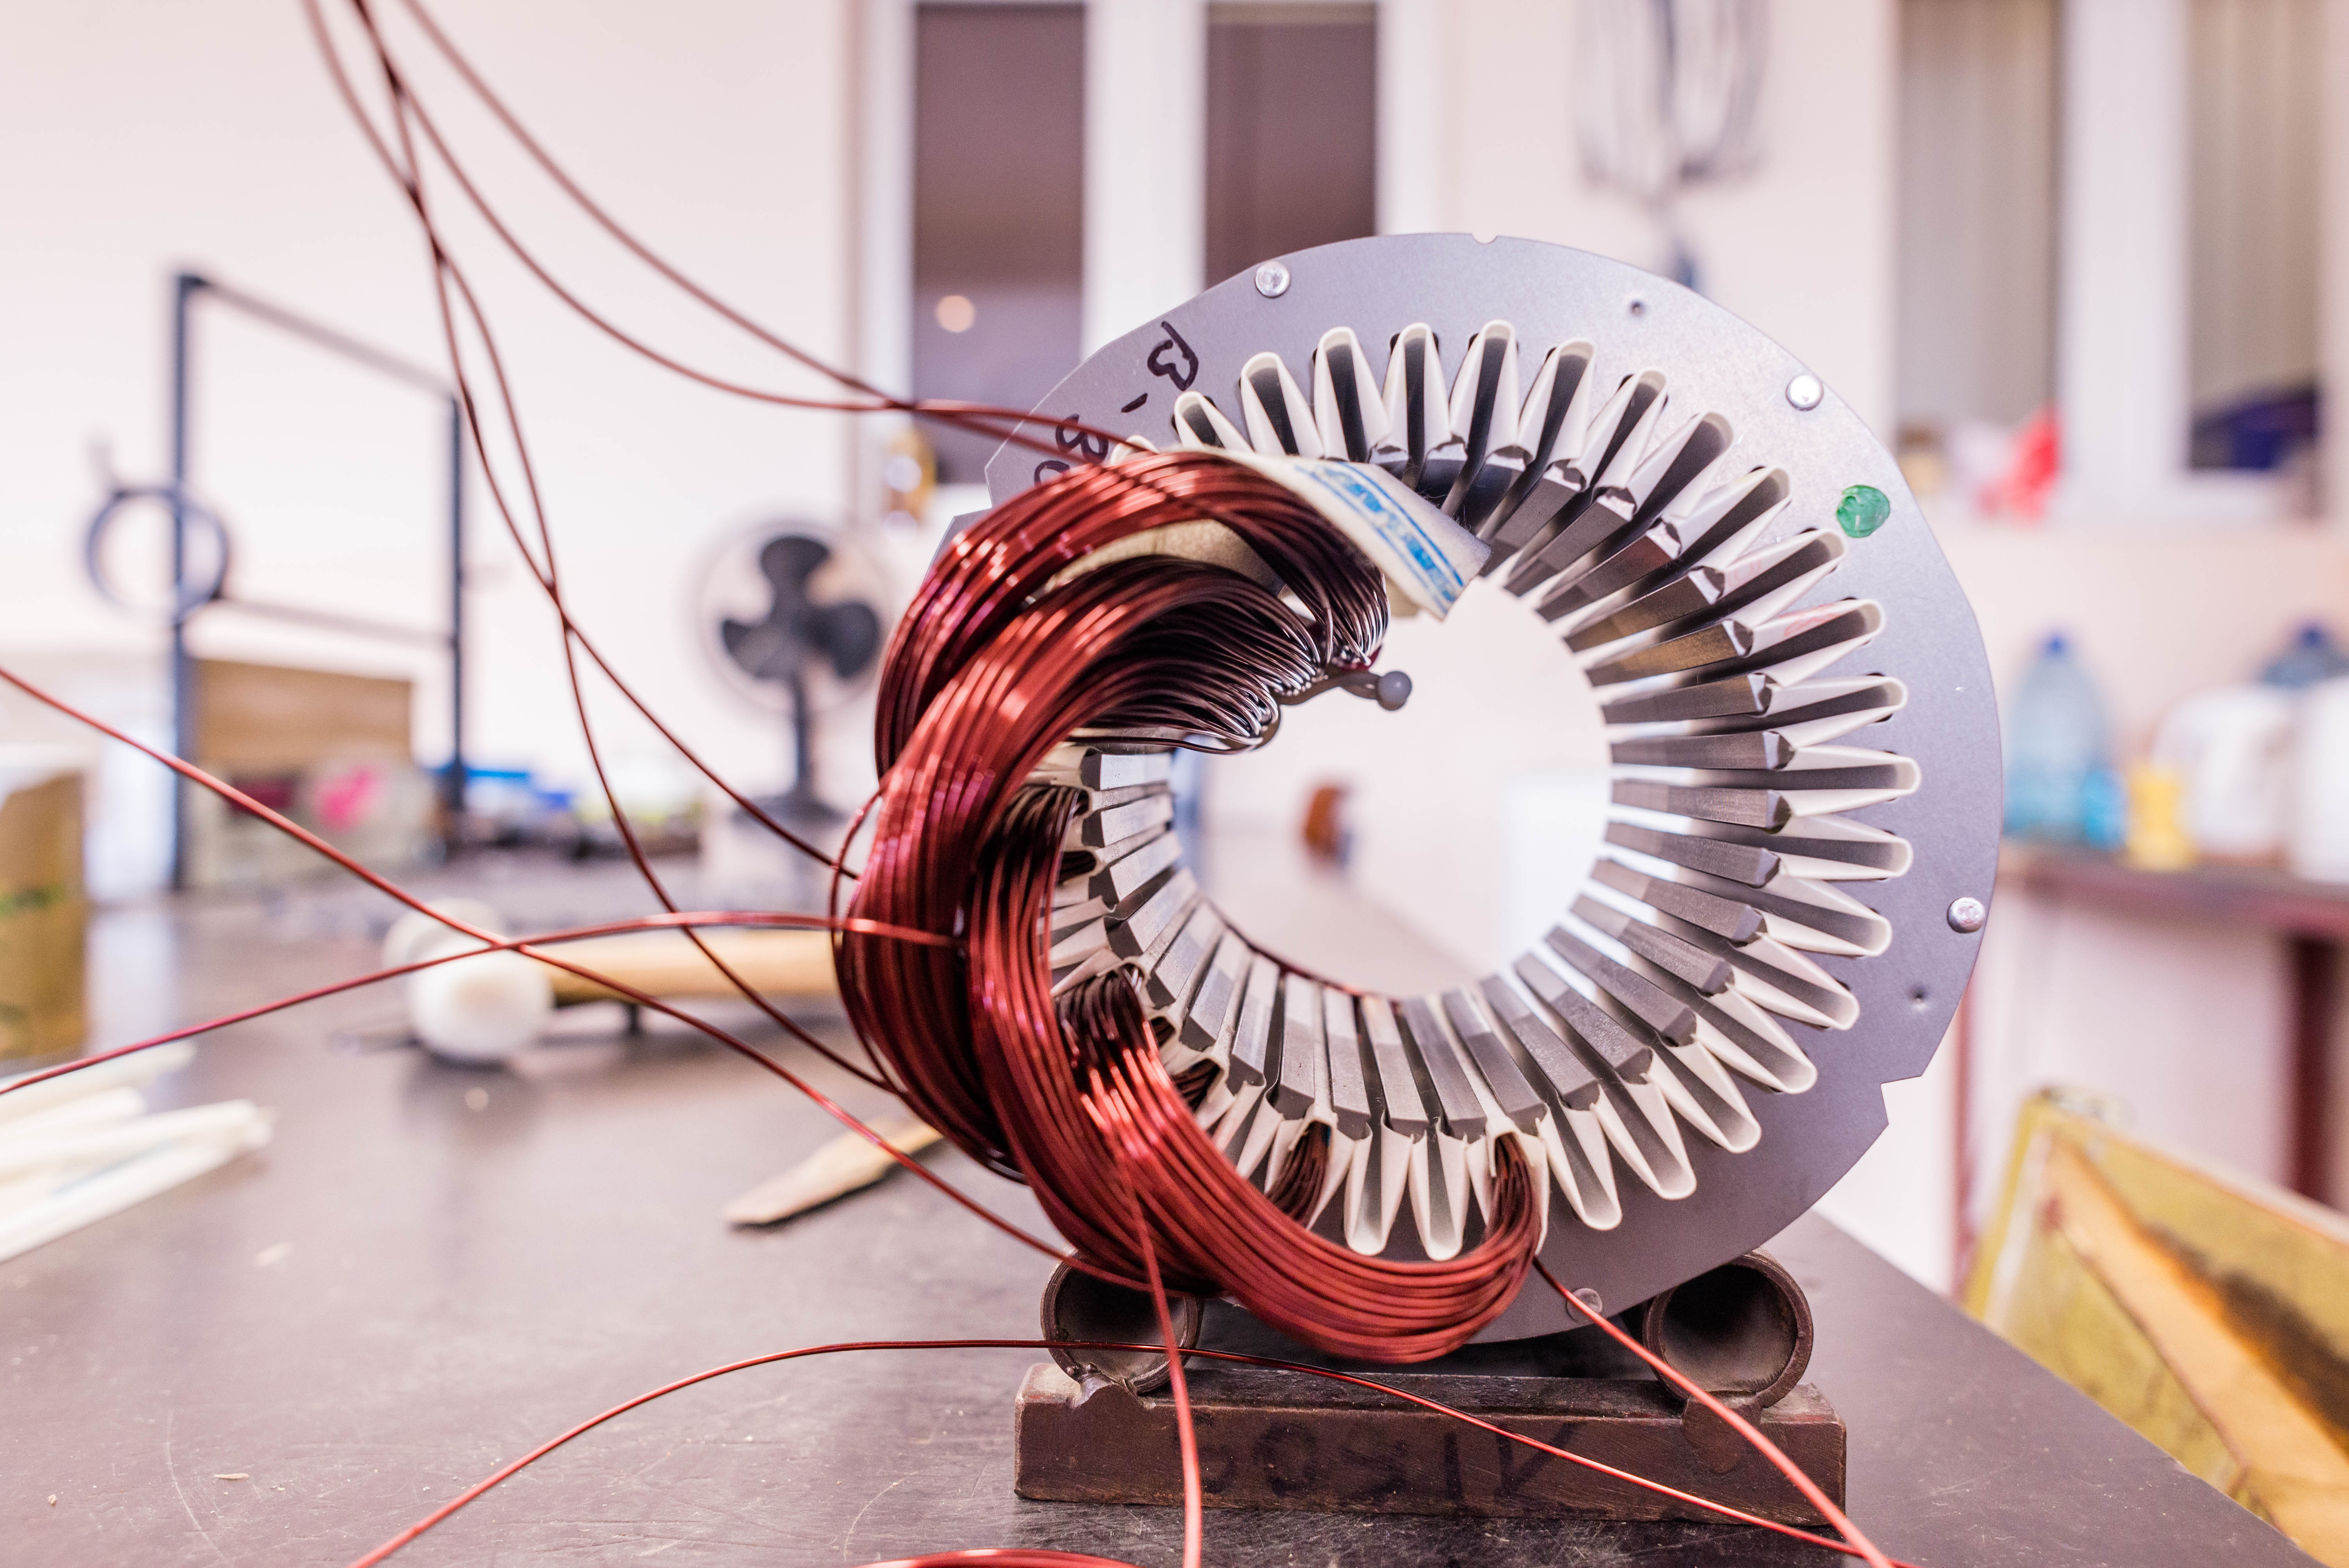 Copper wire in a motor, electric magnetic device for rotor